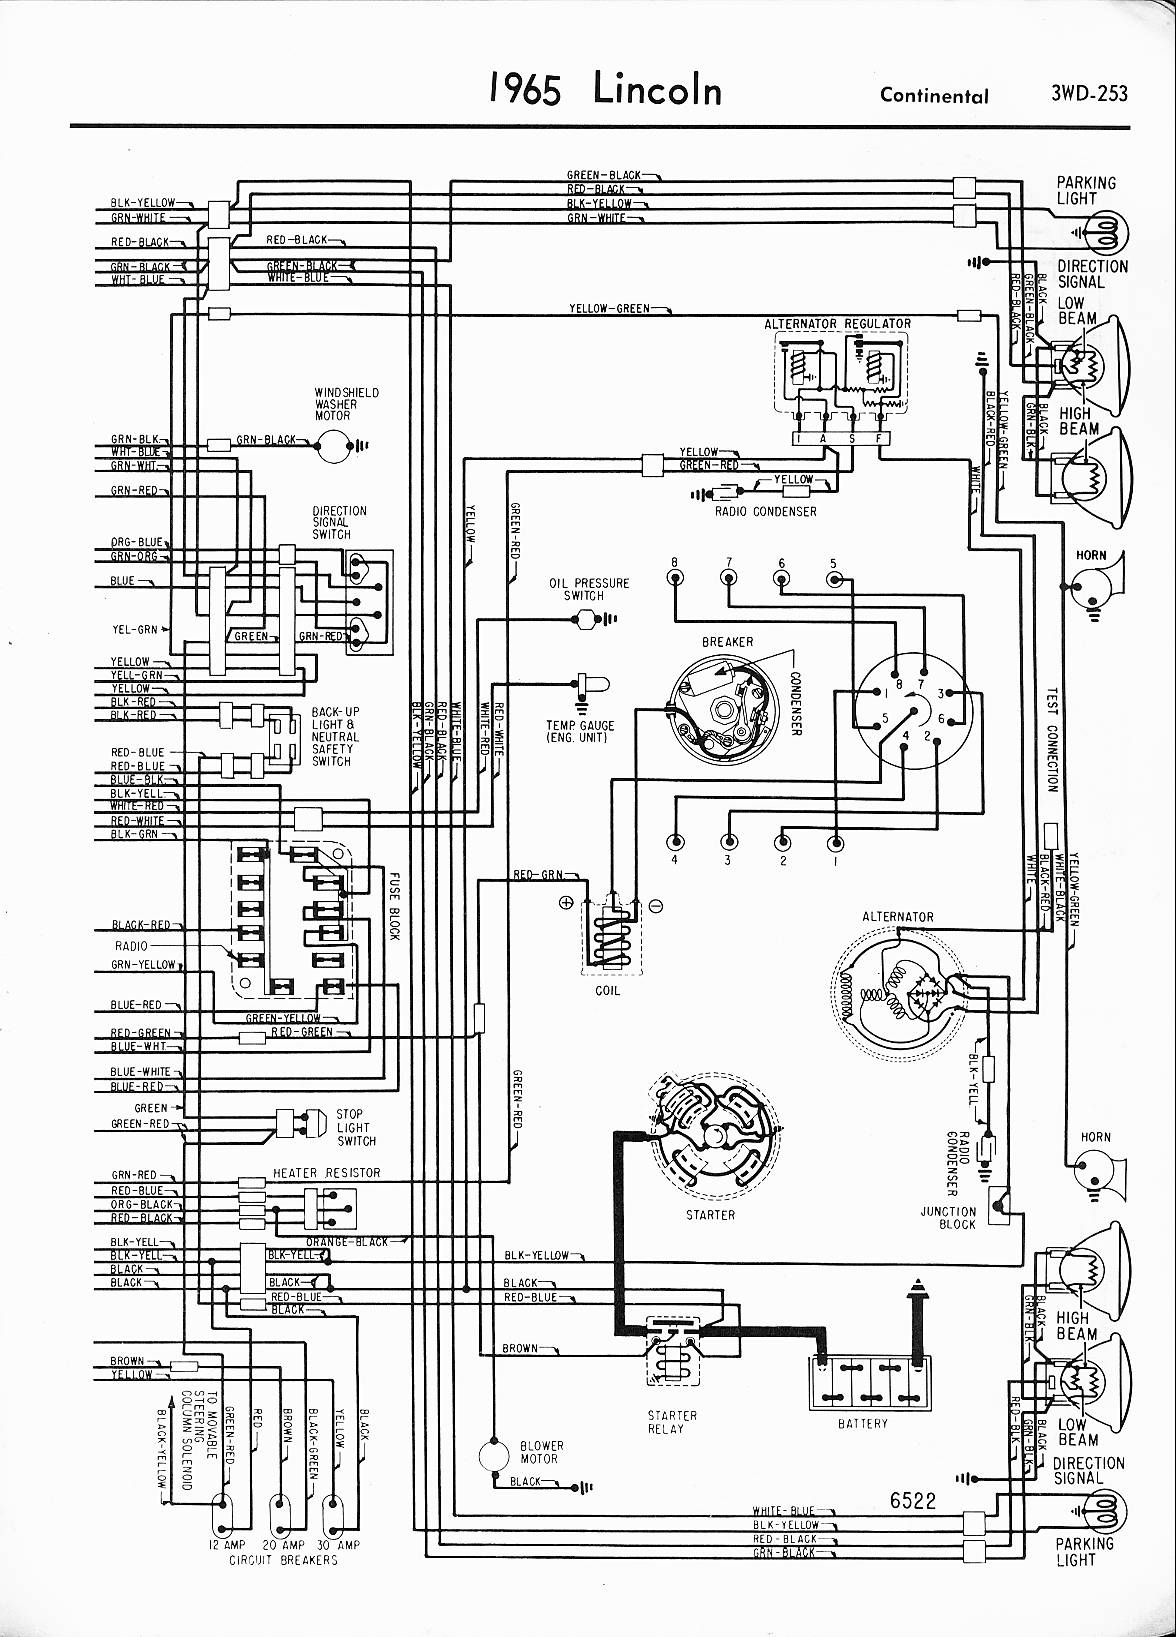 65 lincoln wiring auto electrical wiring diagram Ford Explorer Engine Parts Diagram 65 lincoln firing order � 65 lincoln continental wiring diagram